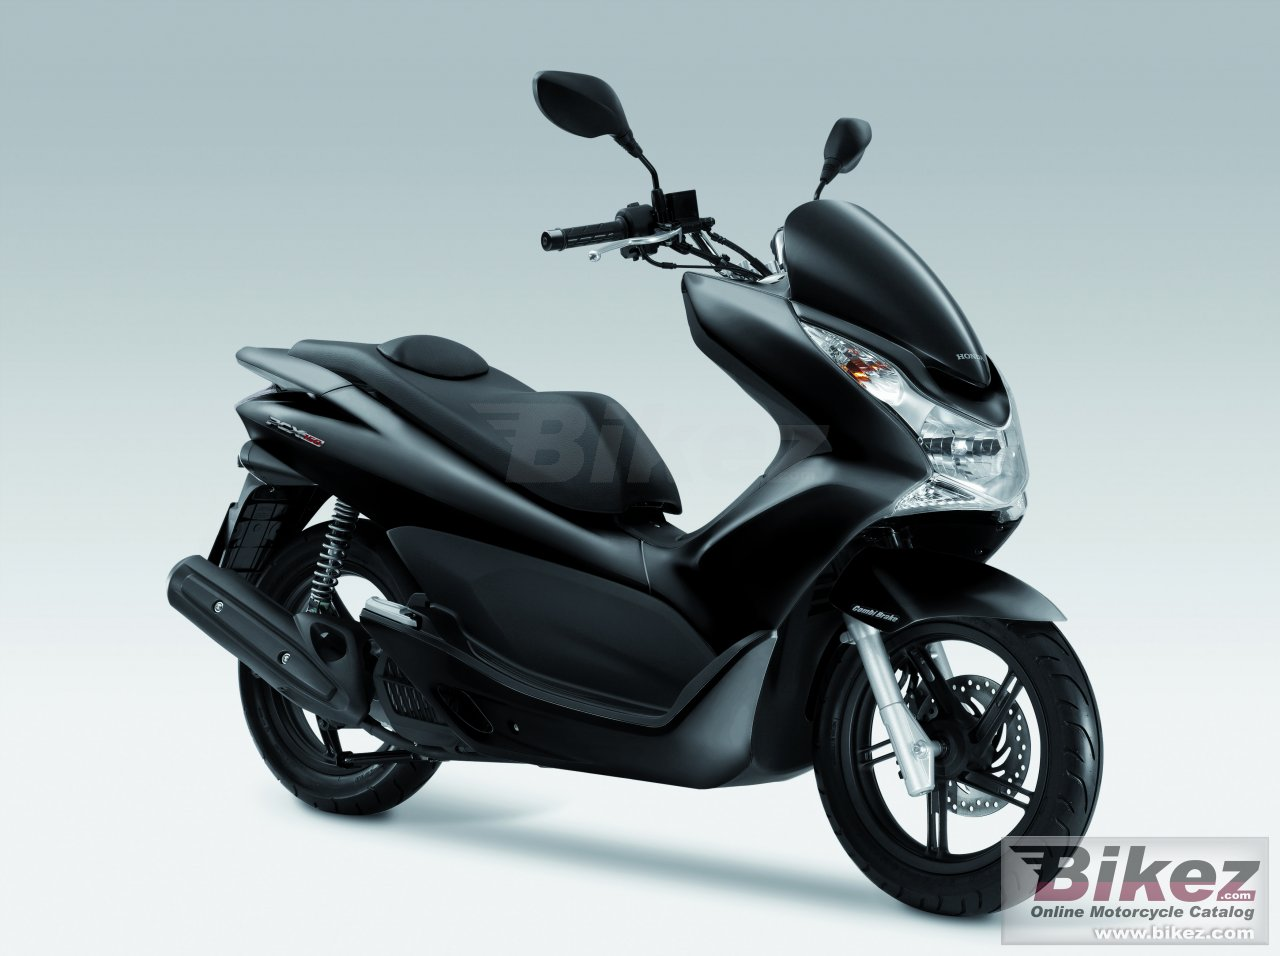 Big Honda pcx150 picture and wallpaper from Bikez.com